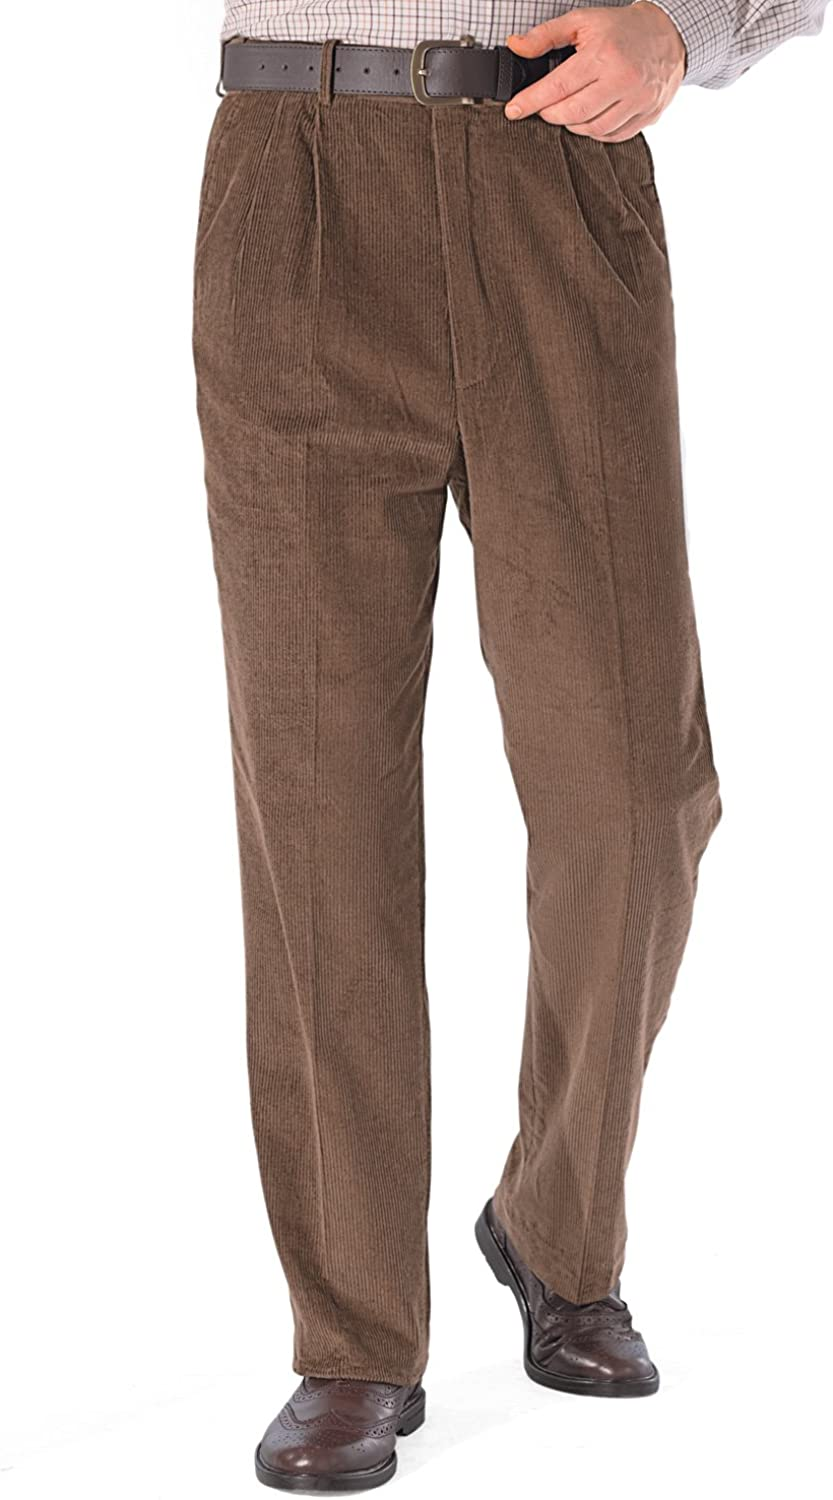 1950s Men's Pants, Trousers, Shorts | Rockabilly Jeans, Greaser Styles Mens HIGH-Rise Trousers Luxury Cotton Corduroy  AT vintagedancer.com